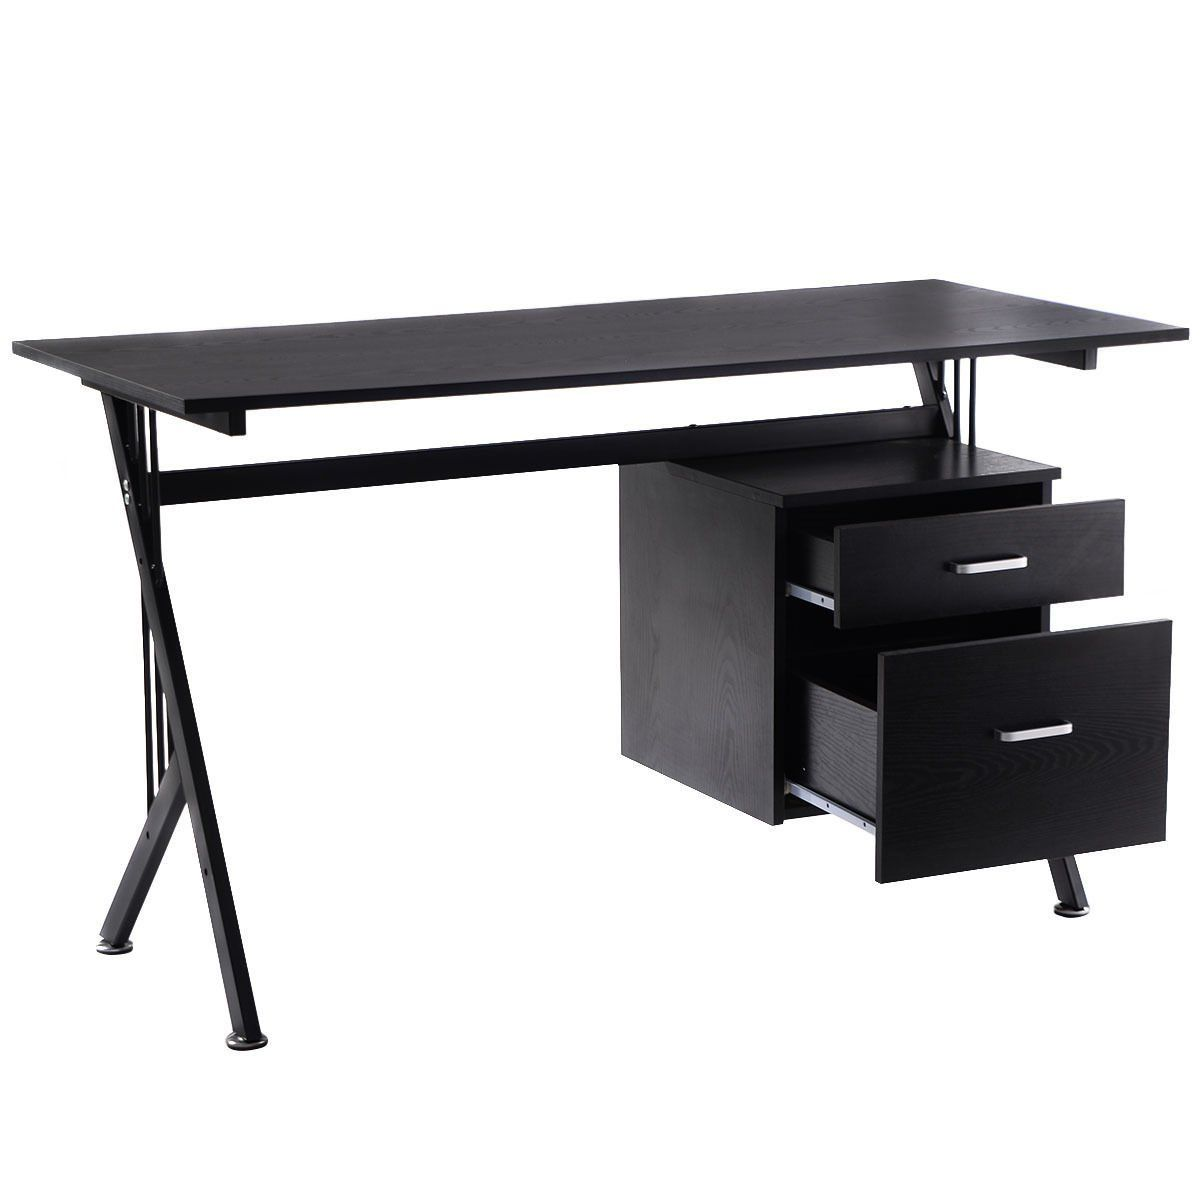 Tangkula K-Frame Wood Laptop Writing Table Computer Desk Workstation Home Office Black